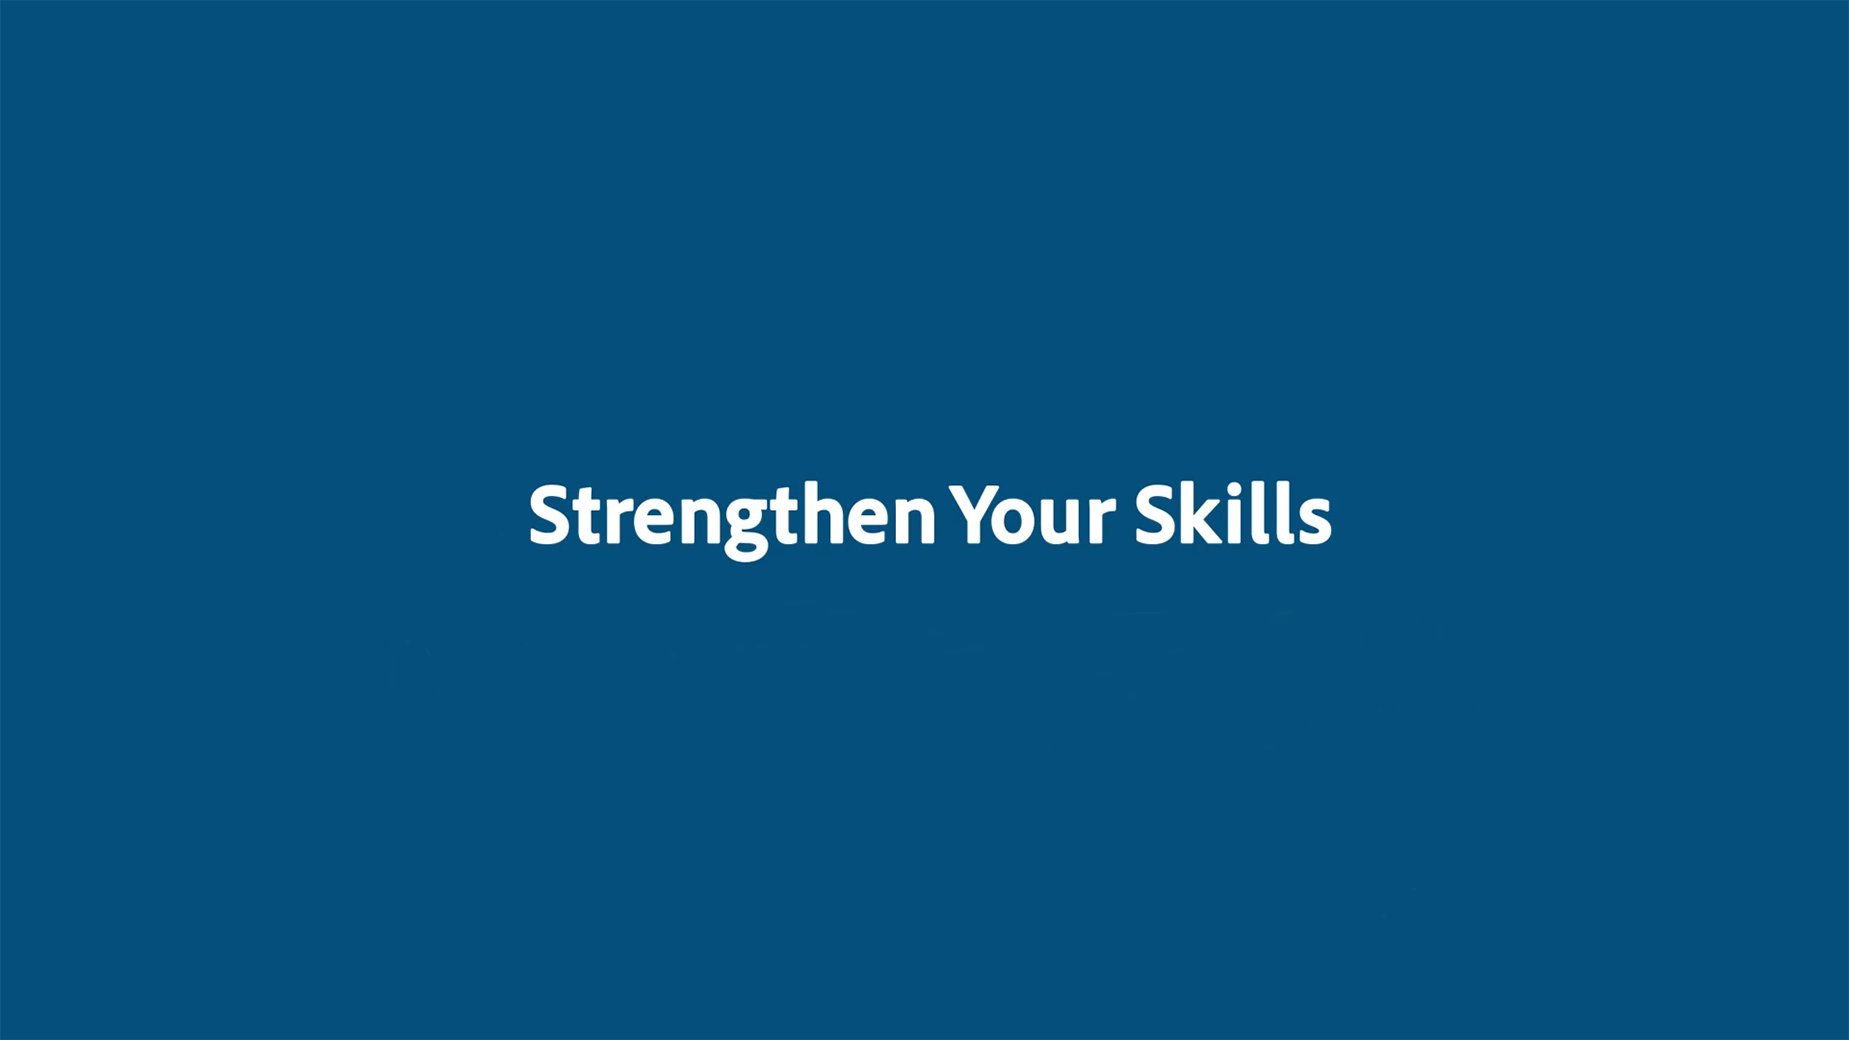 Develop strategies to strengthen your skills